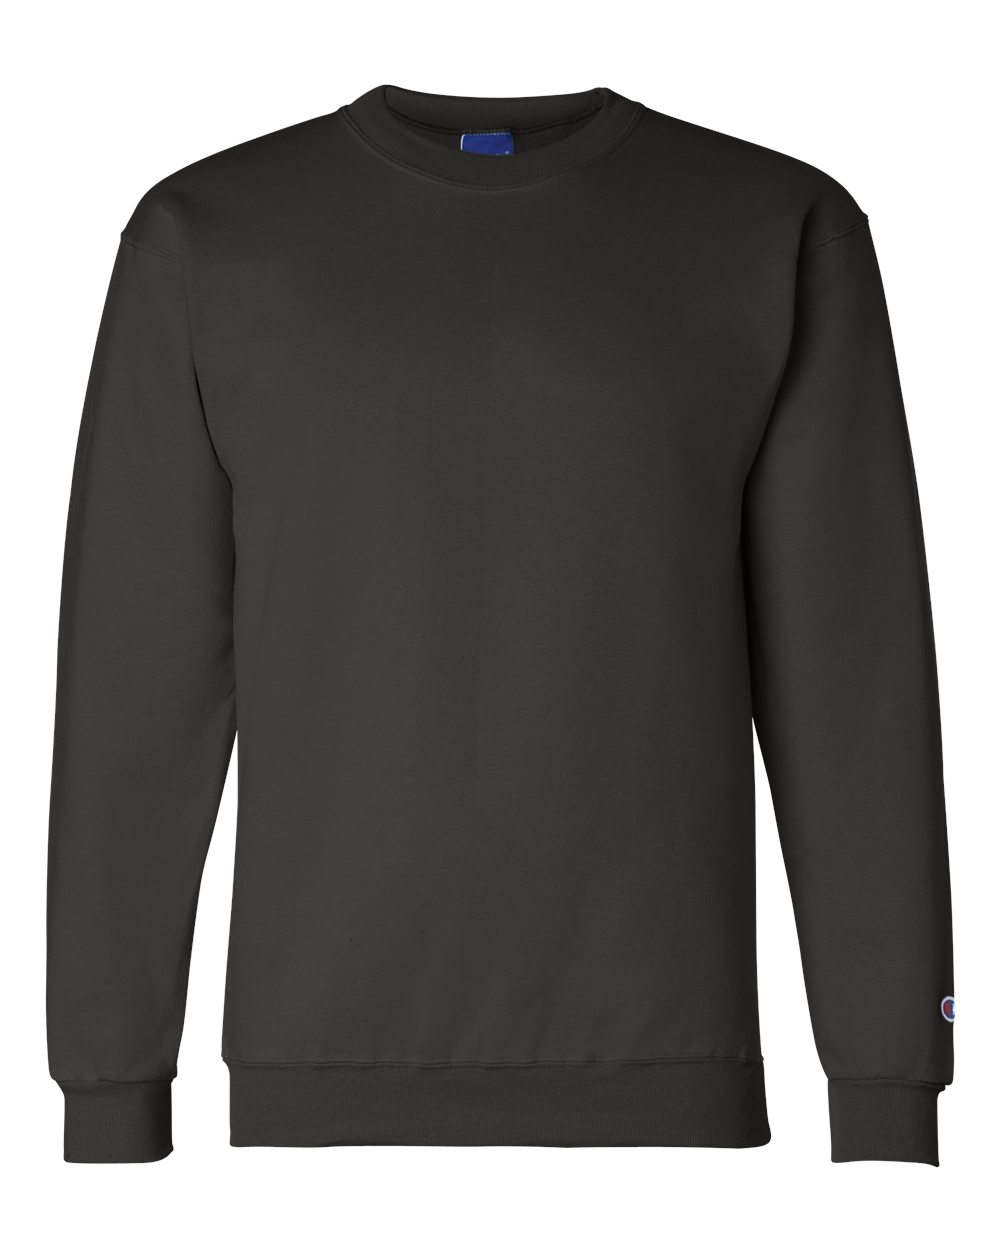 a6edc3330 'A picture of a Champion Double Dry Eco Crewneck Sweatshirt, ready to be  custom. '